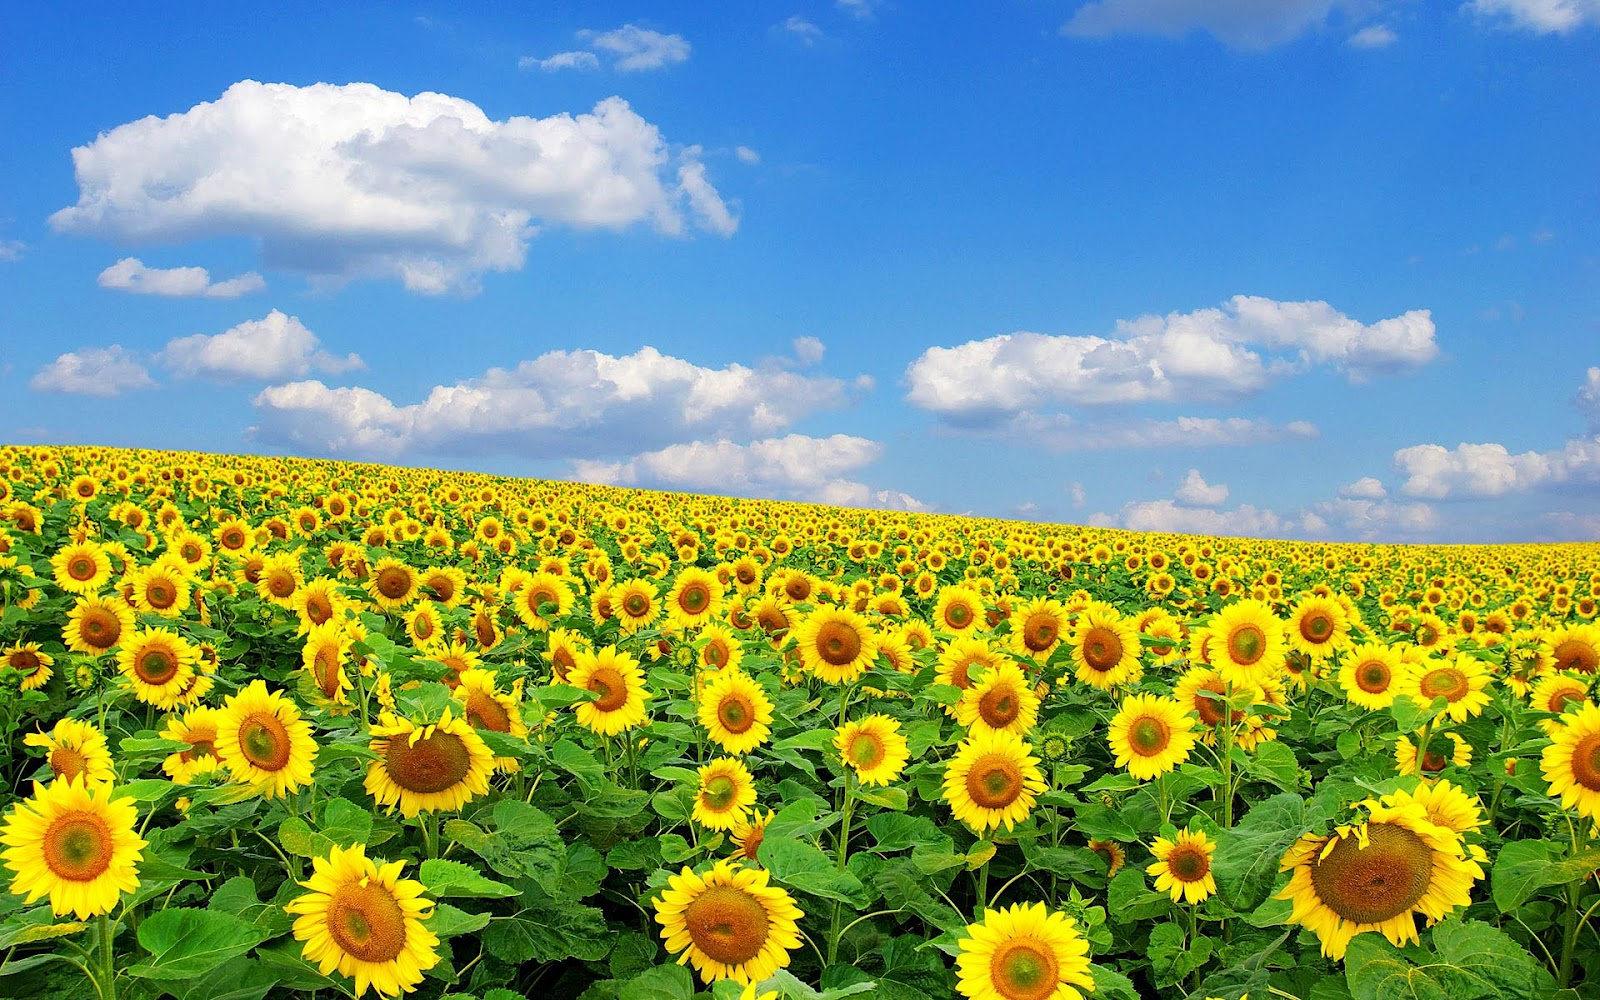 hd background: sunflower wallpapers